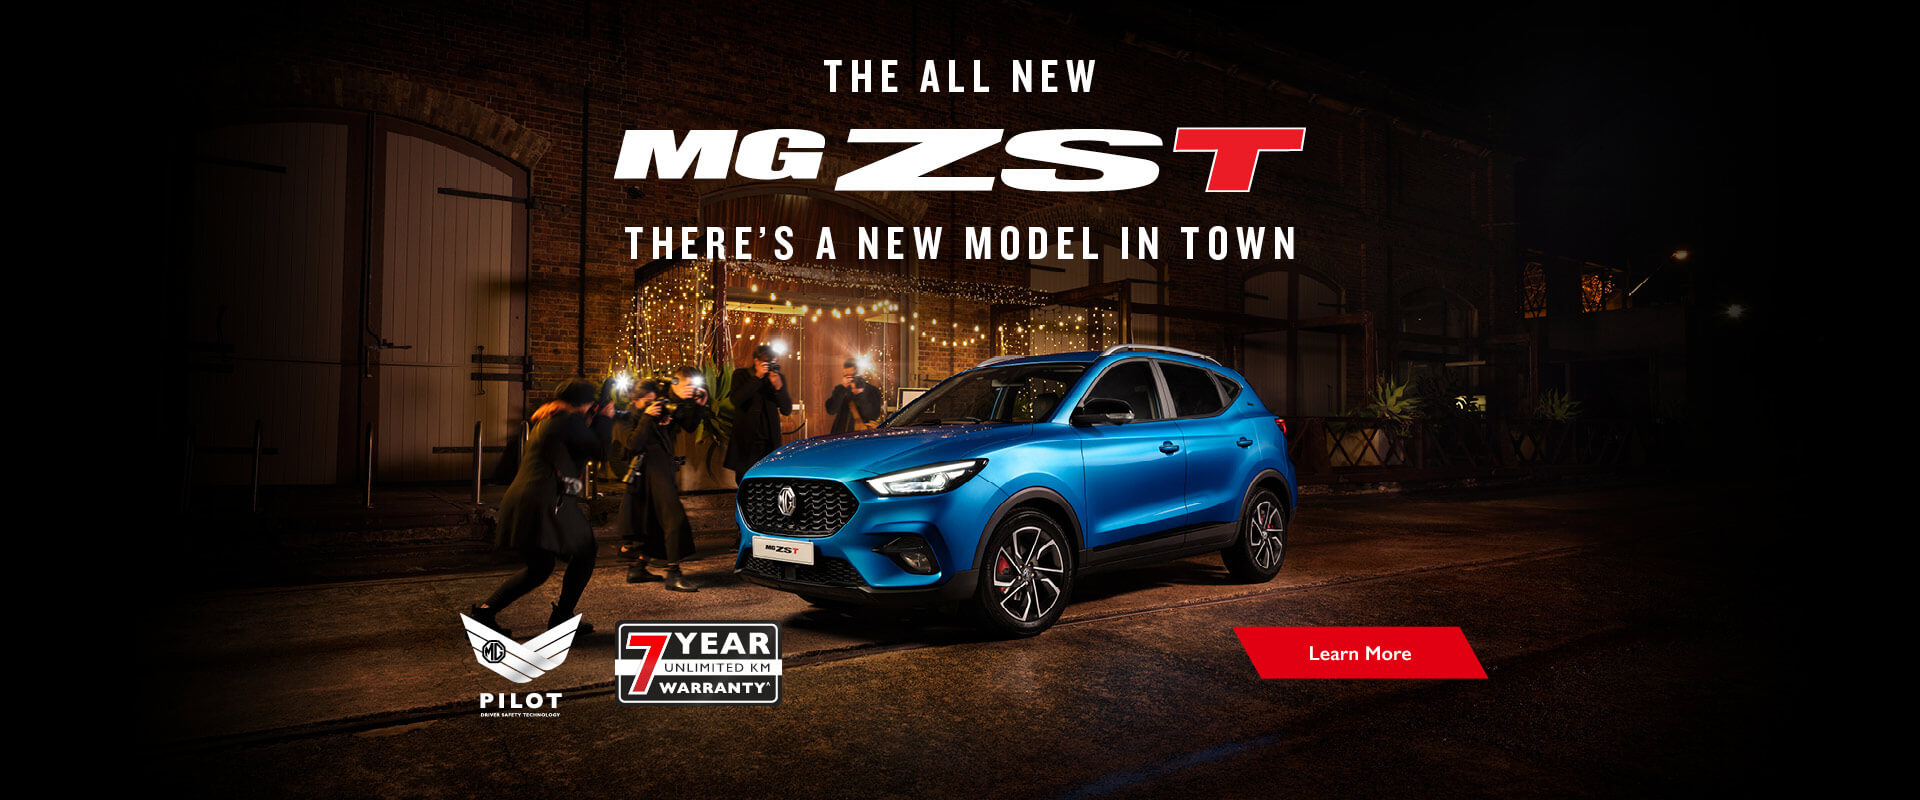 The all new MG ZST - Available now.